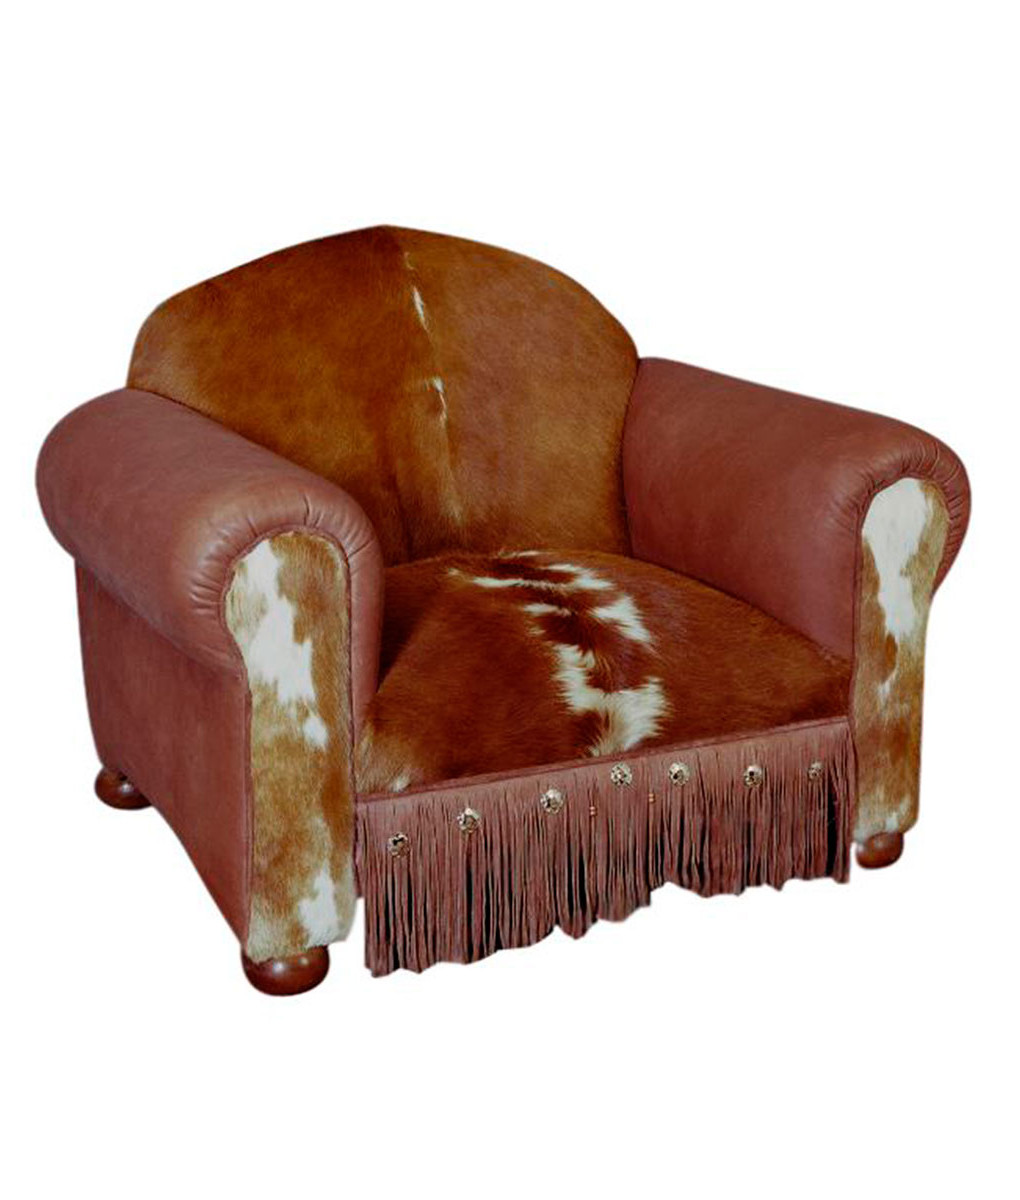 Western armchair with cowhide, full grain leather, fringe and conchos from Rustic Artistry